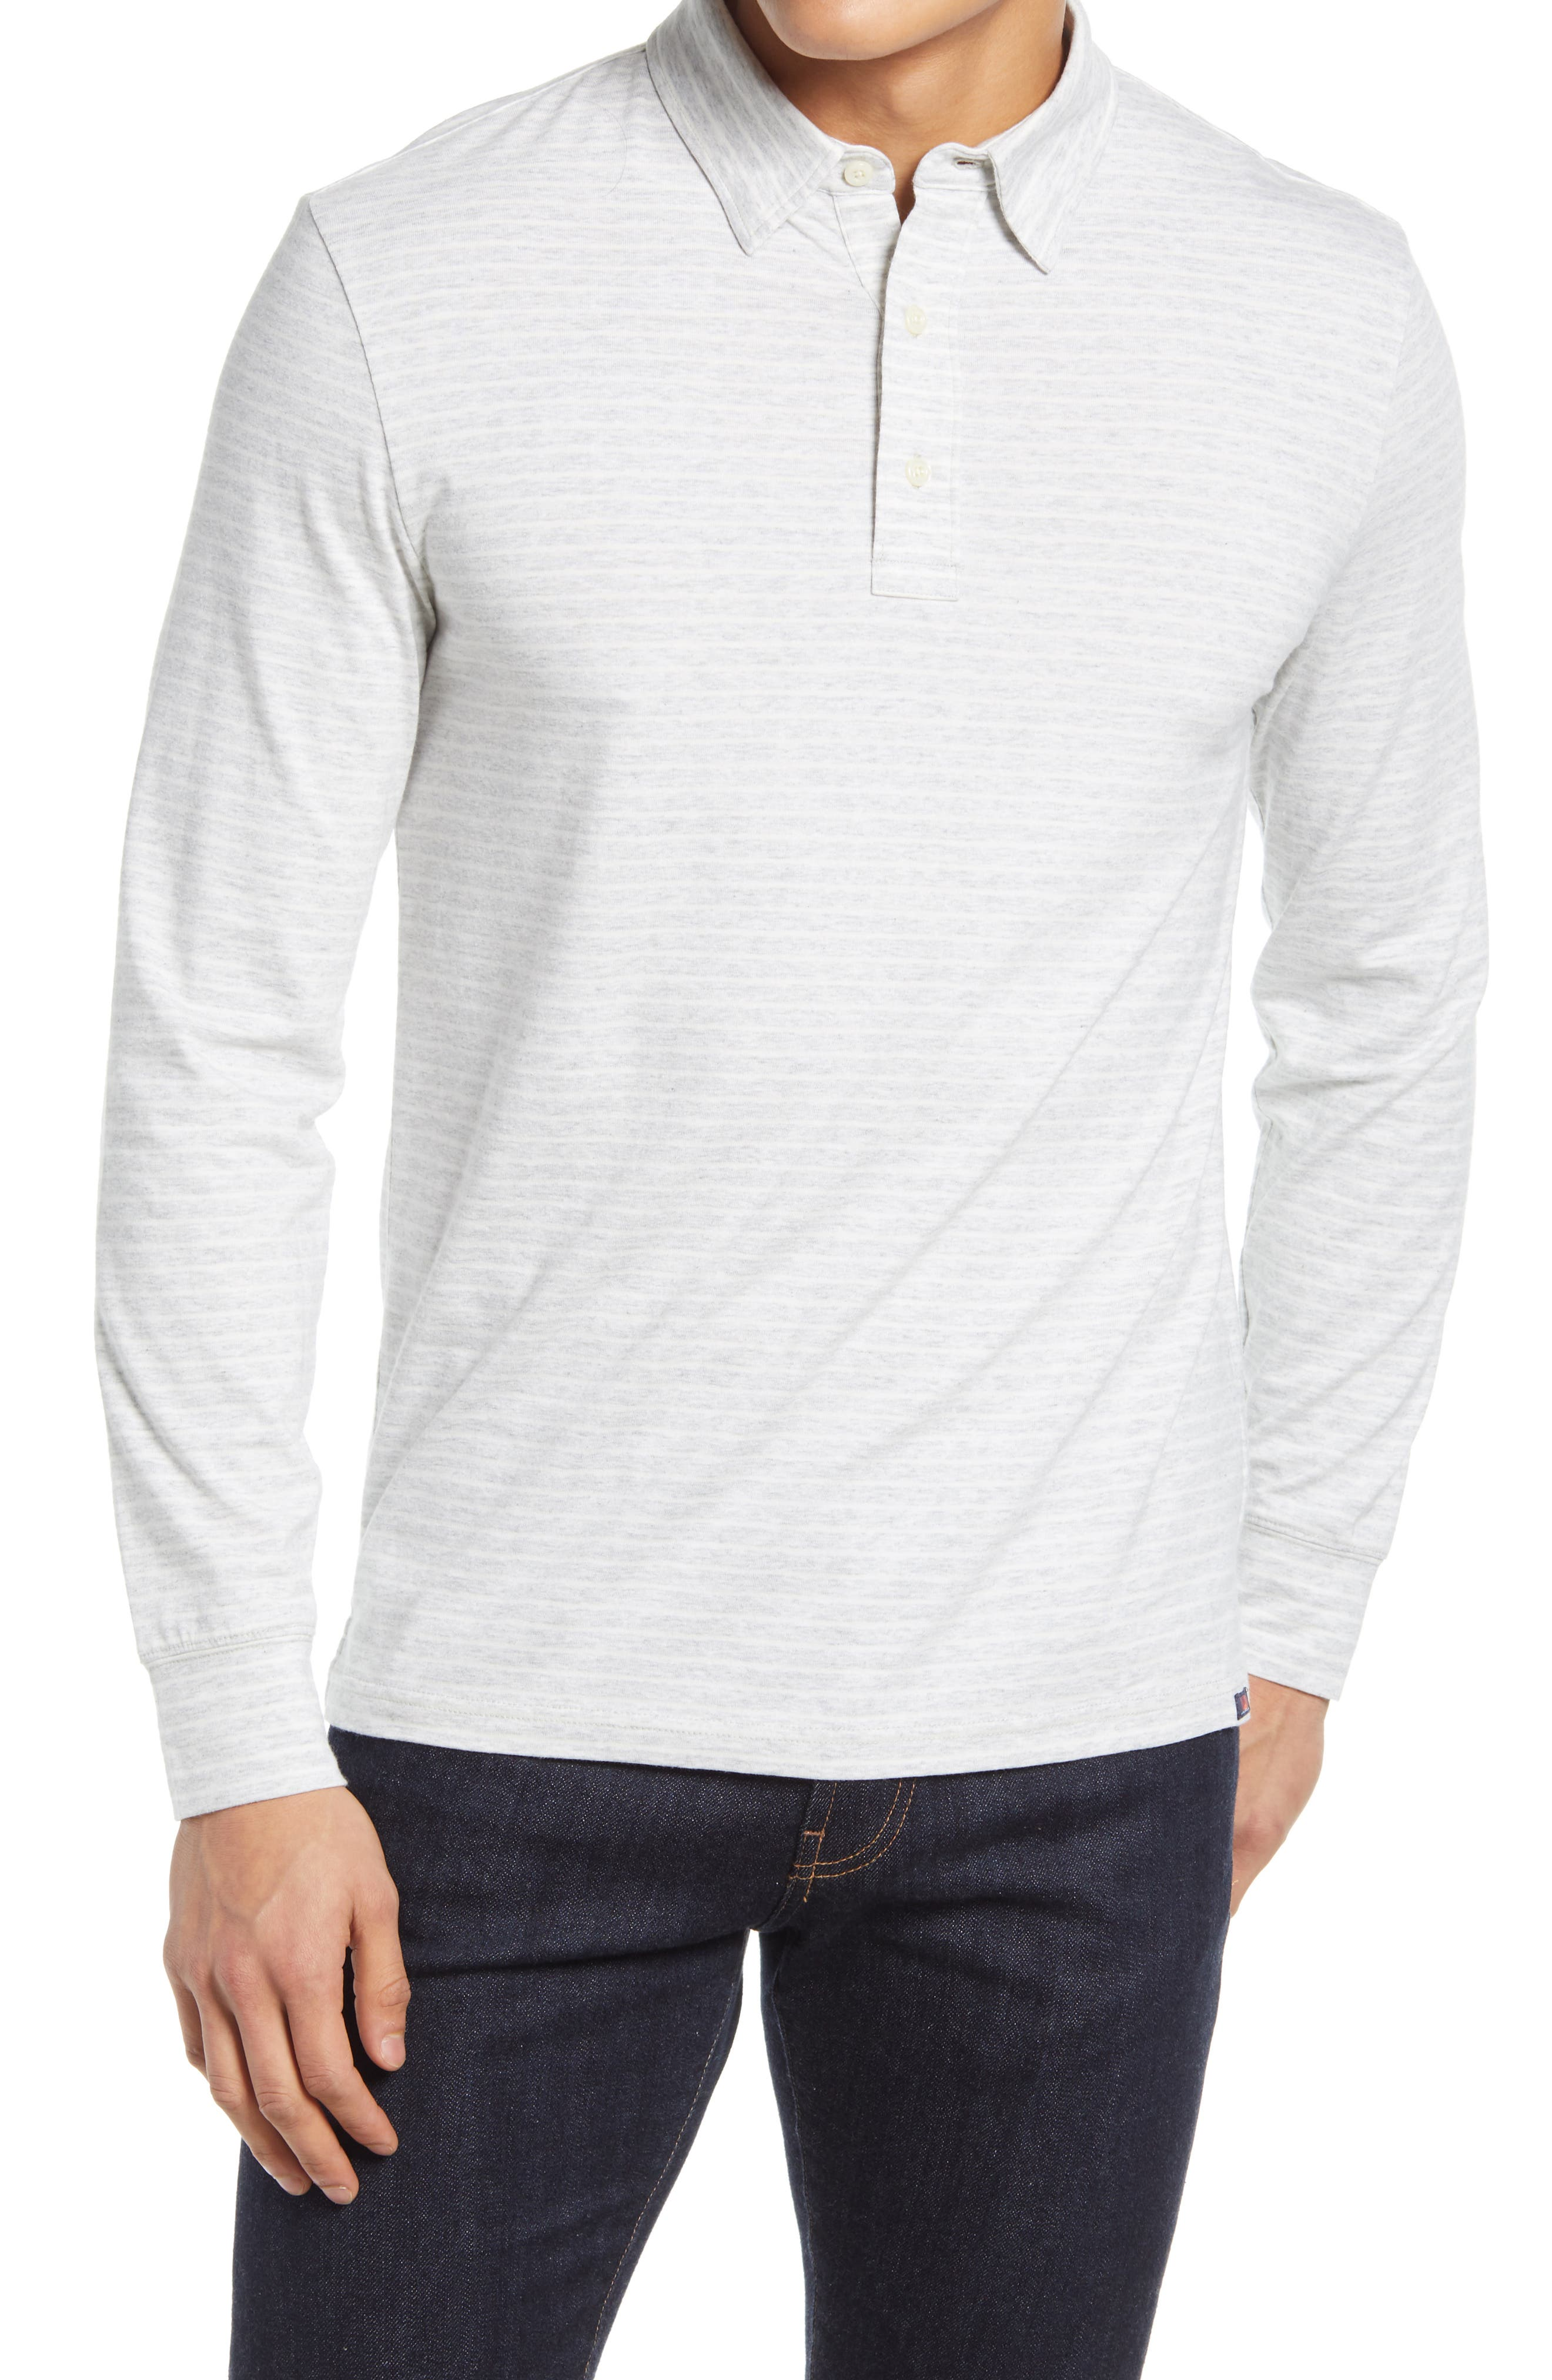 Men's Long Sleeve Polo Shirts | Nordstrom